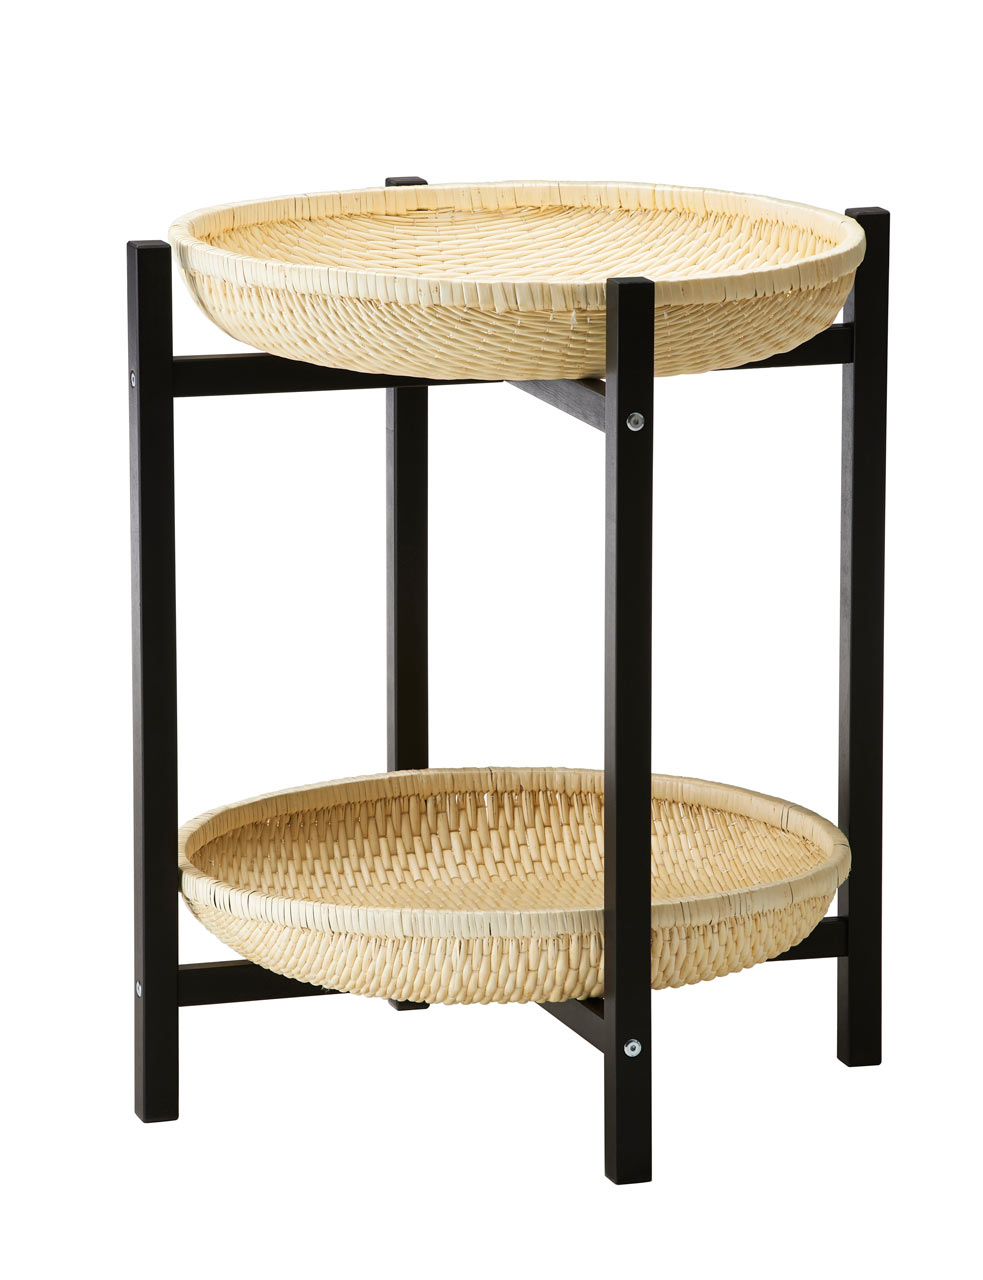 IKEA-Trendig-2013-Collection-9-basket-table